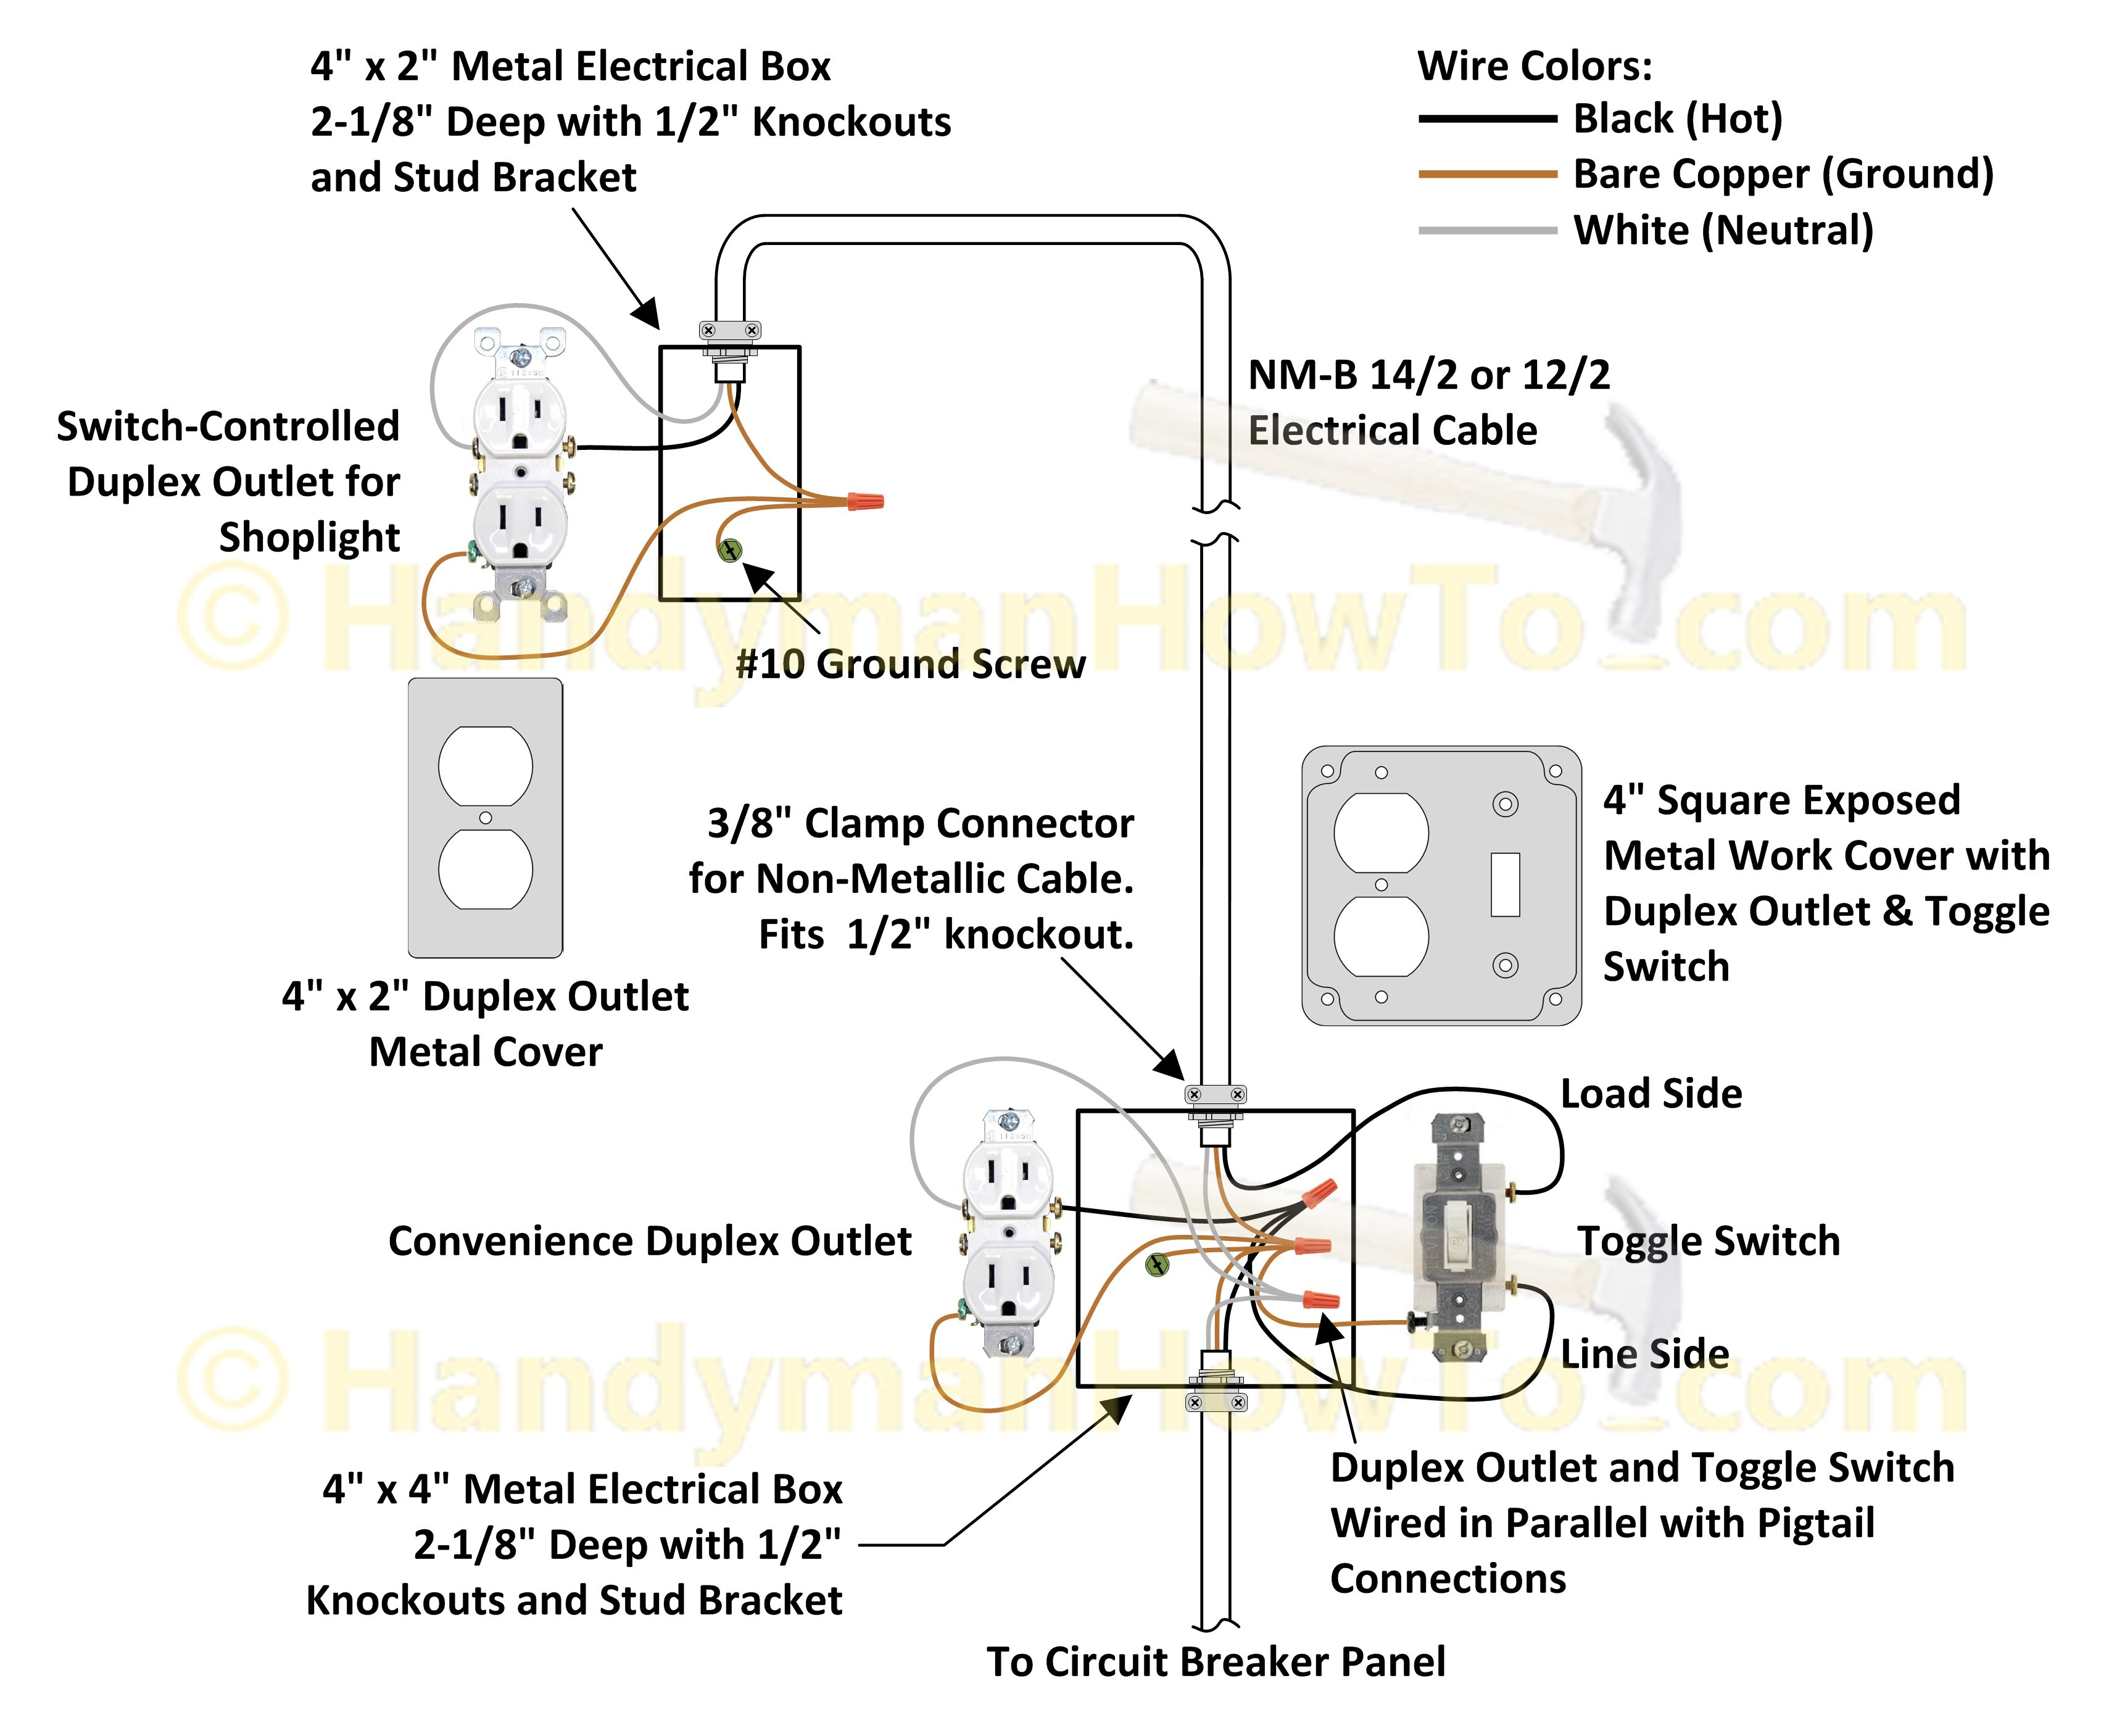 Wiring Diagram For Canarm Exhaust Fan New New How To Wire A Light Switch Diagram 87 For Your 1998 Ford F150